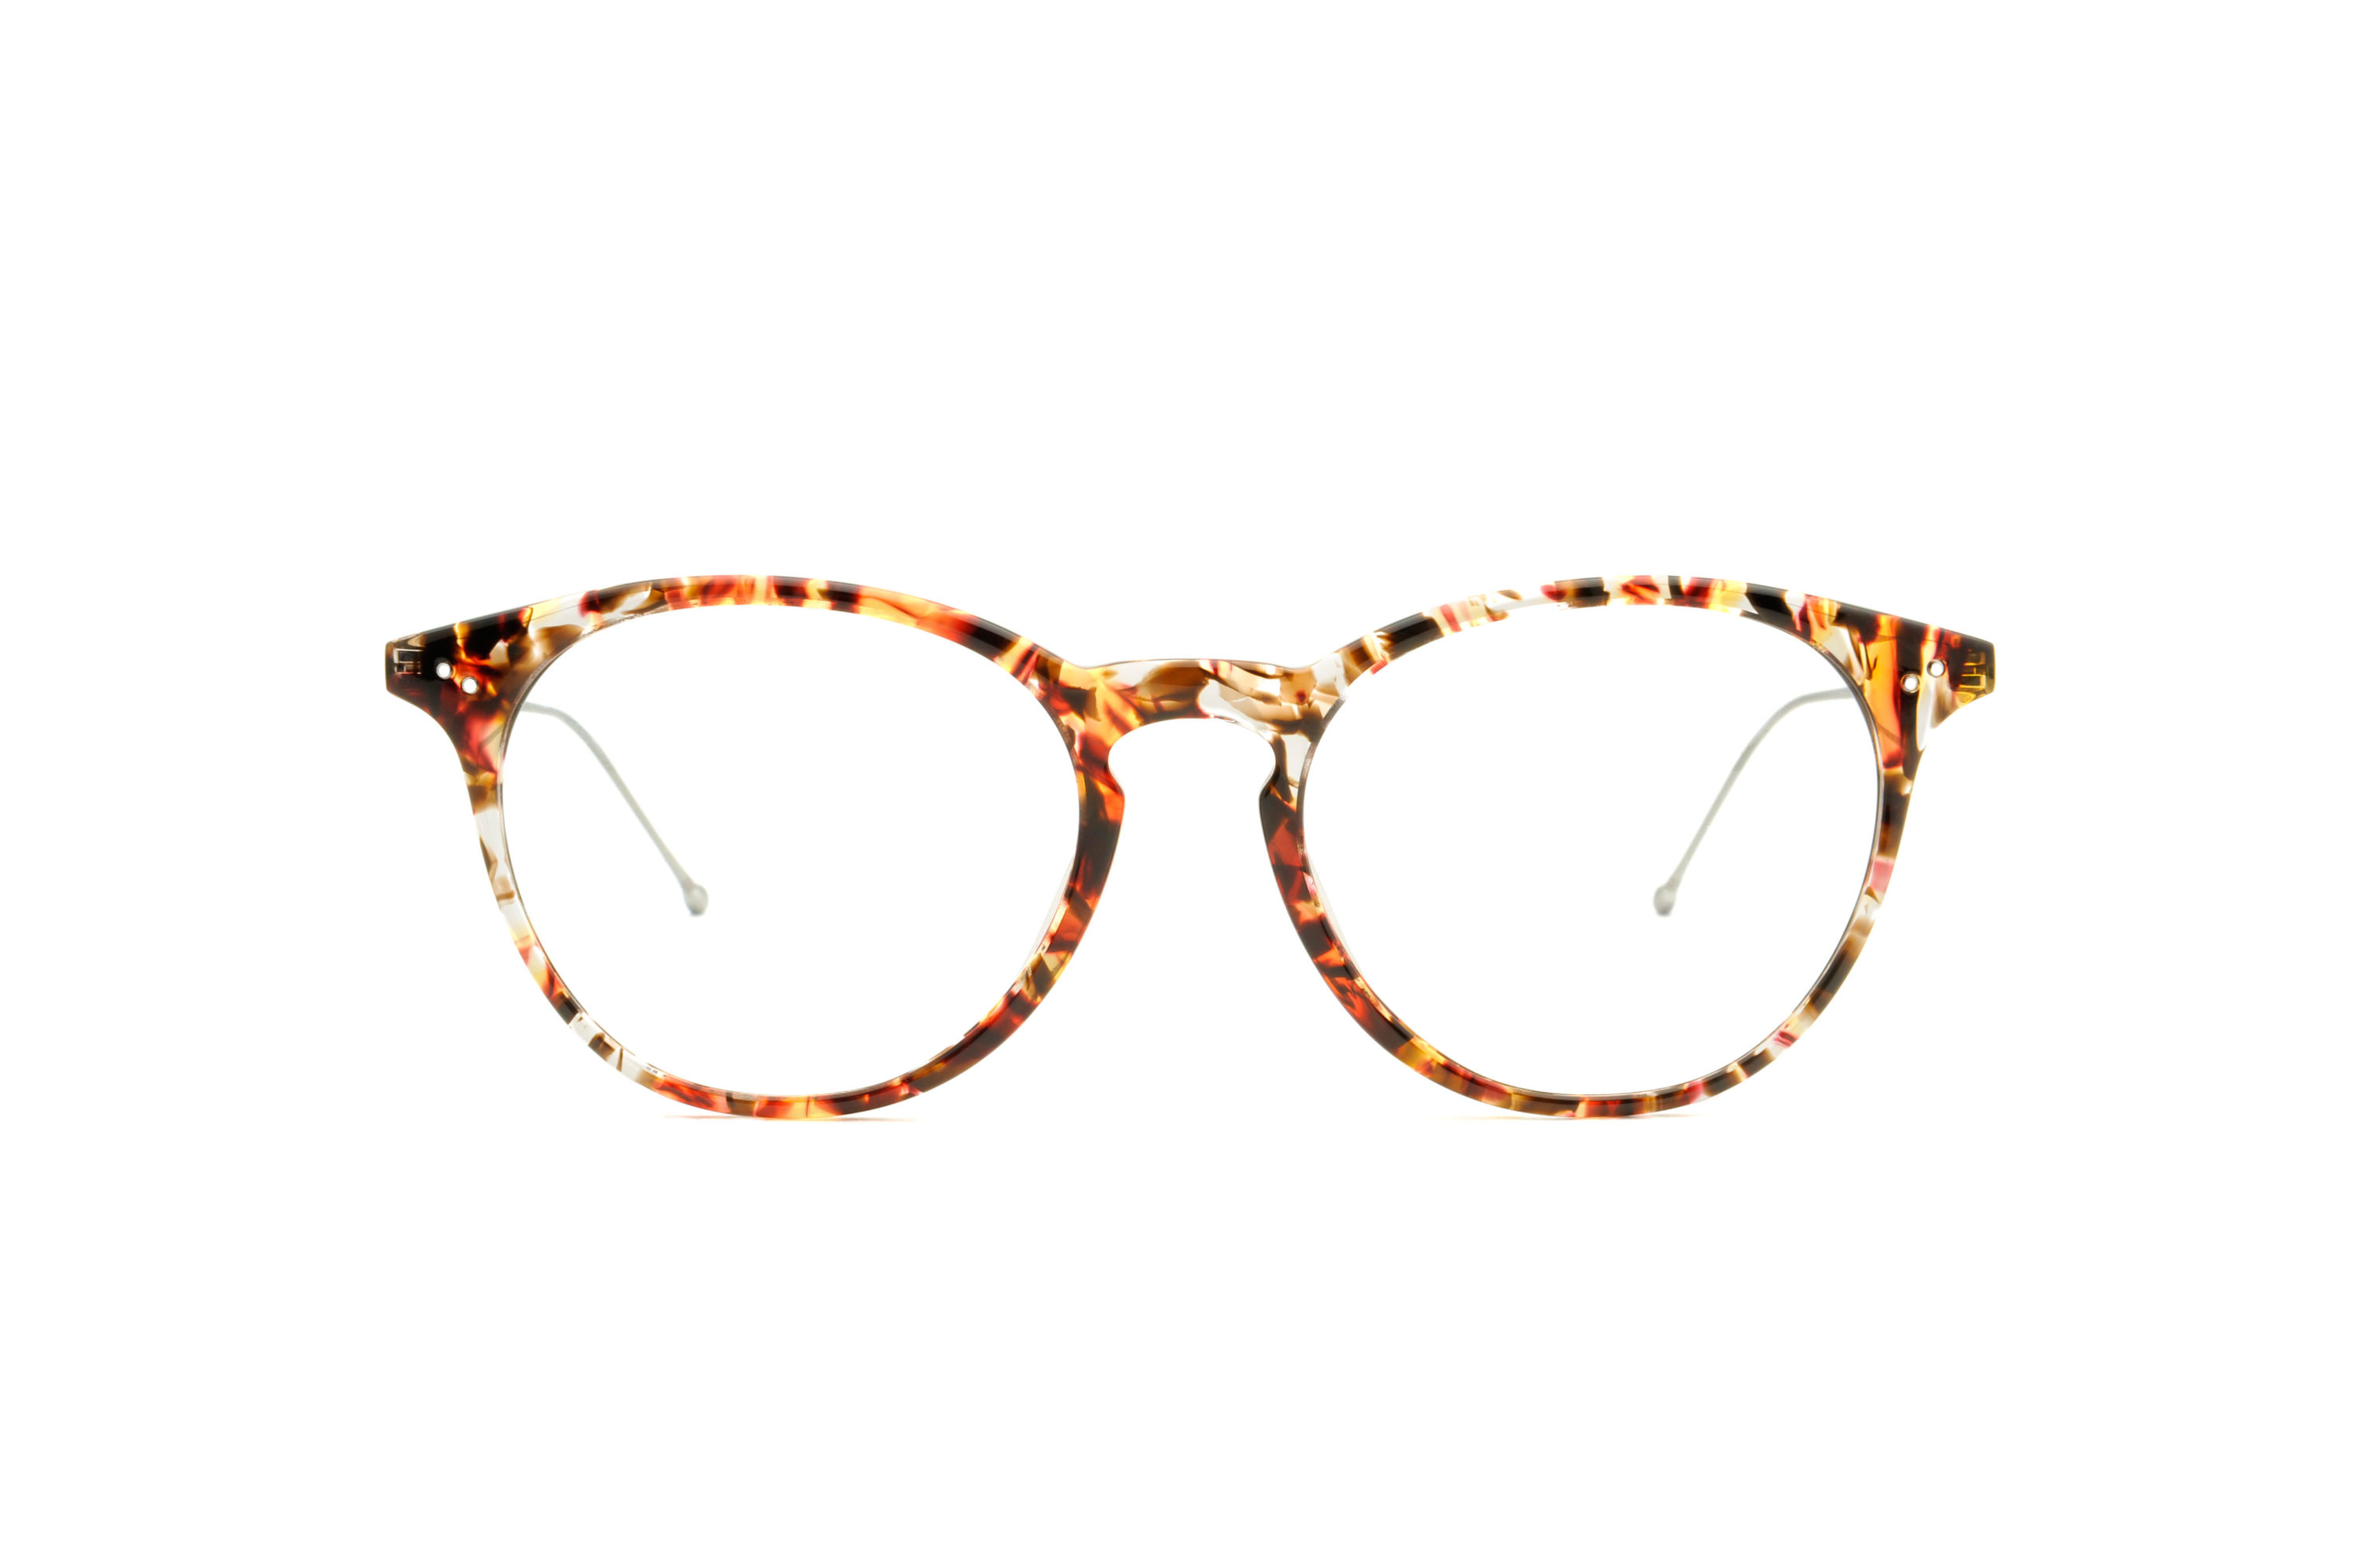 Flow acetate rounded tortoise sunglasses by GIGI Studios